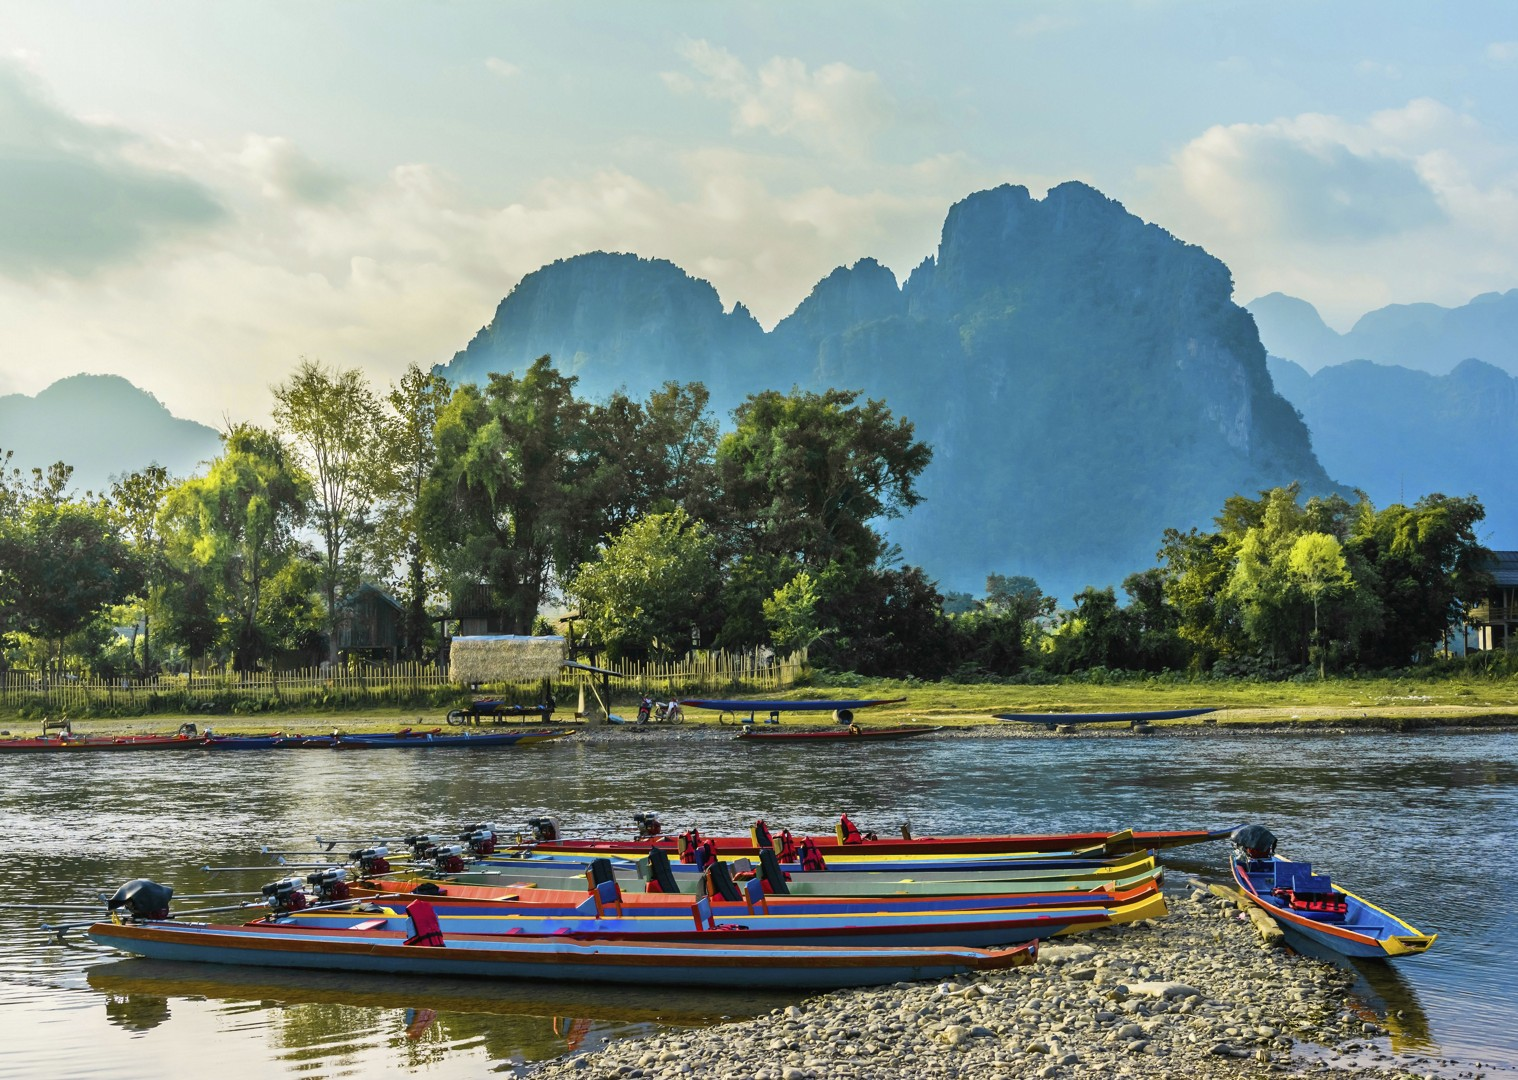 cycling-adventure-laos-holiday-NamSong-VangVieng.jpg - Laos - Hidden Treasures - Cycling Adventures